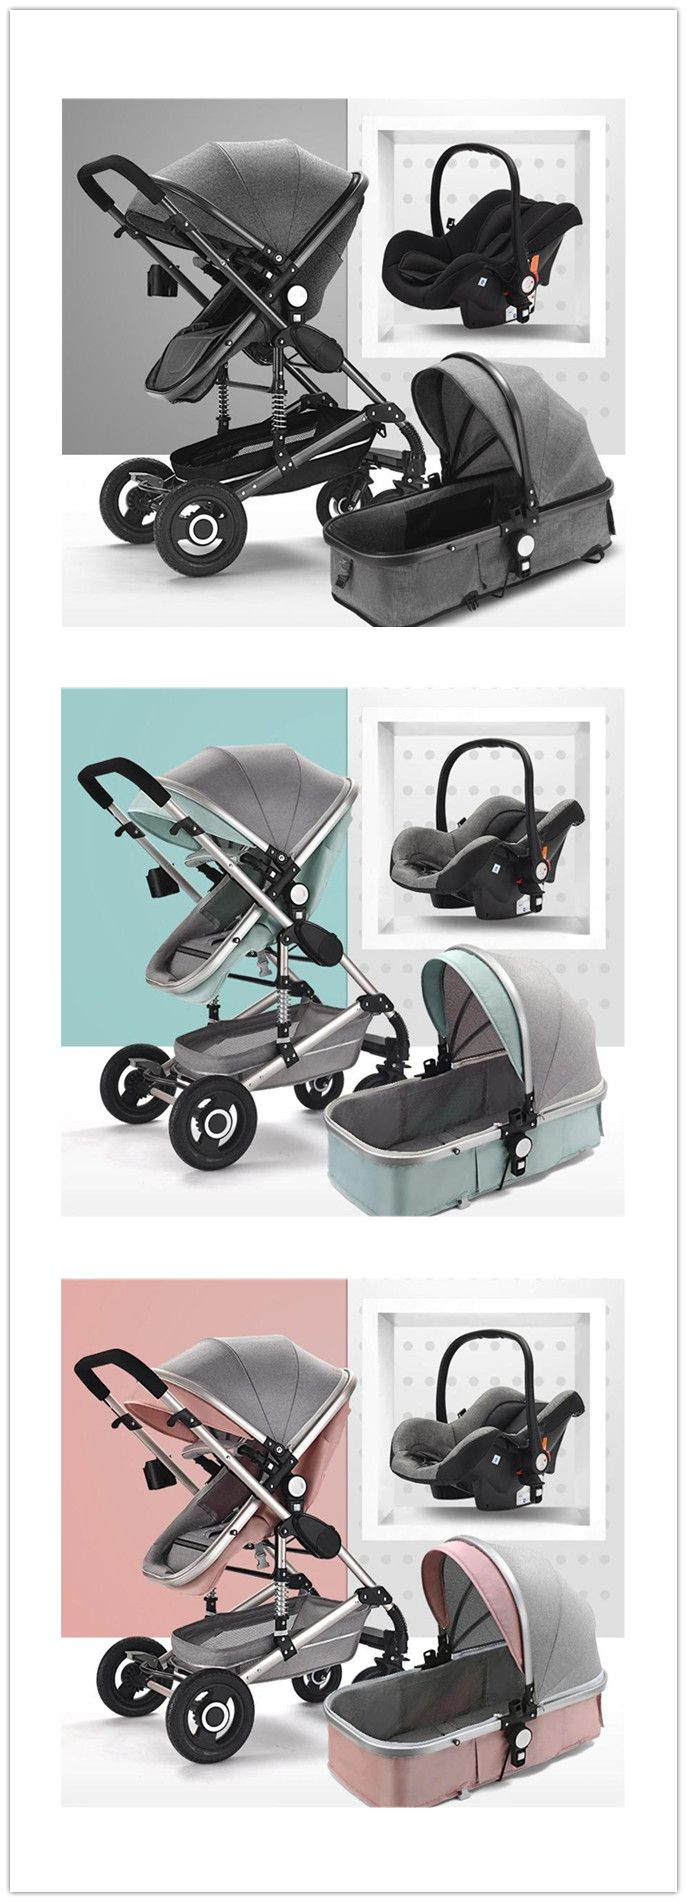 Multifunctional 3 in 1 Baby Stroller with Car Seat